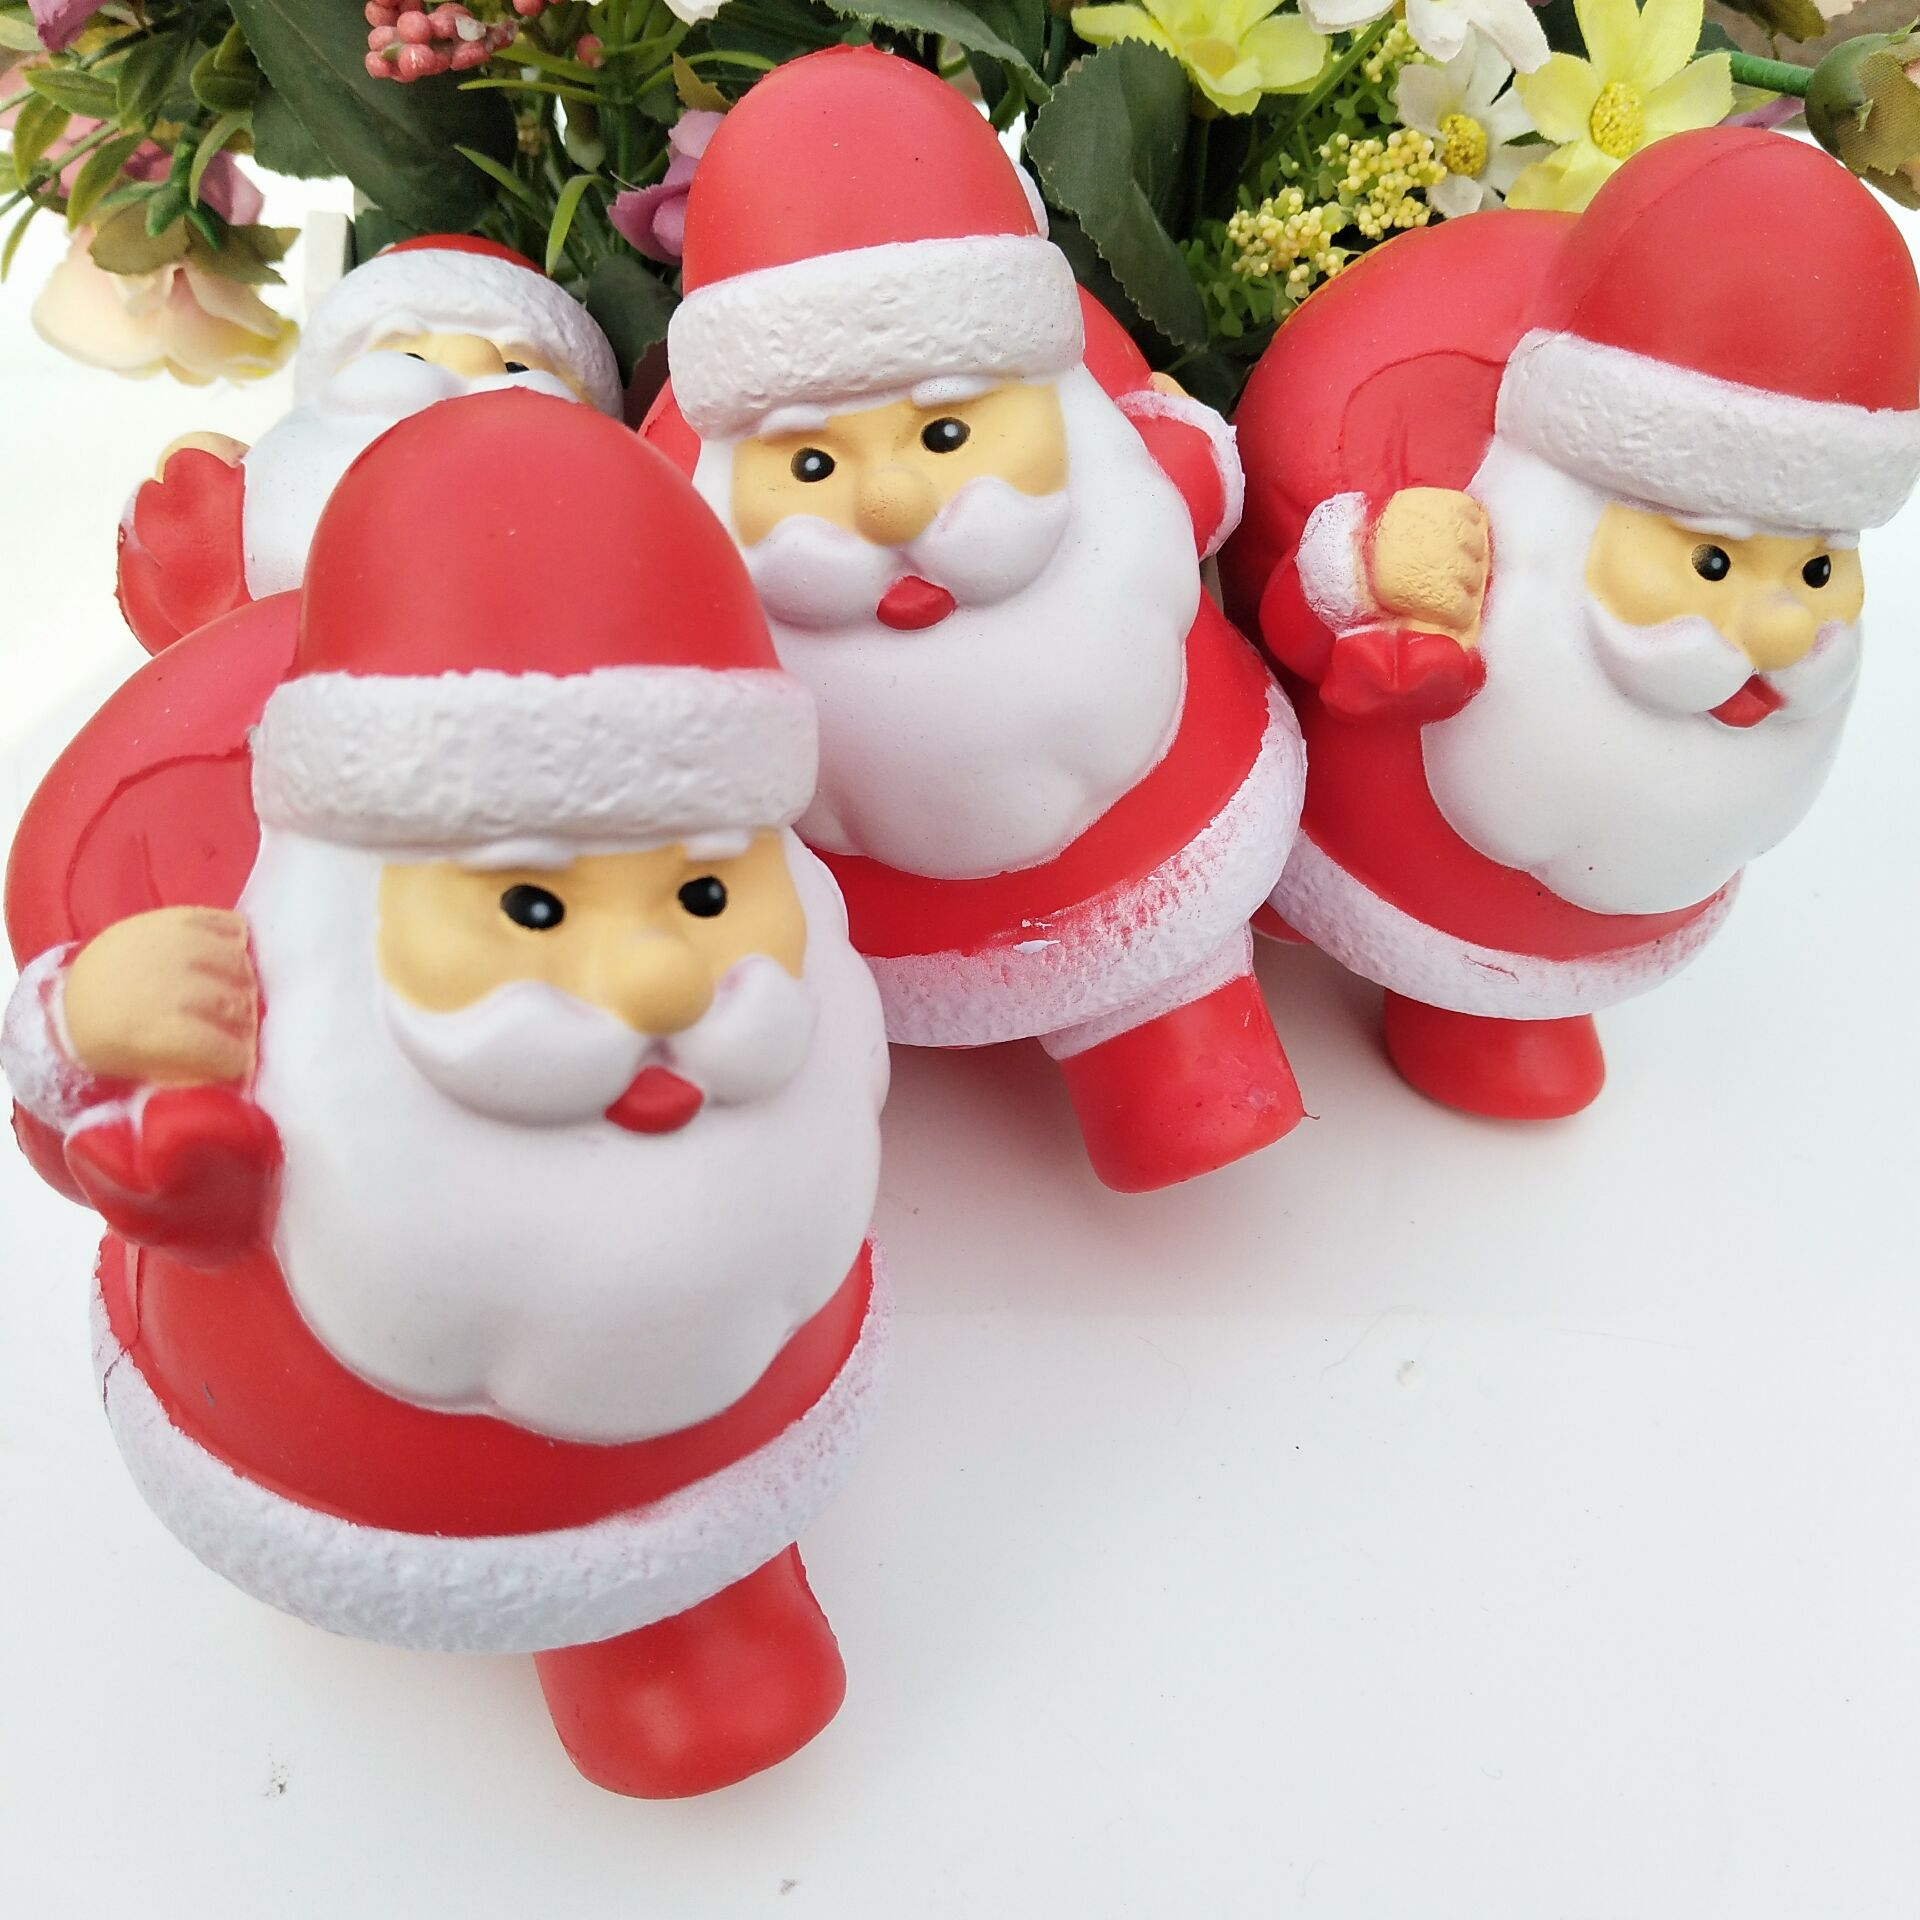 13cm Red Santa Claus Scented Squishy Toys Charm Slow Rising Soft PU Funny Squeeze Toys for Kids Christmas Gifts